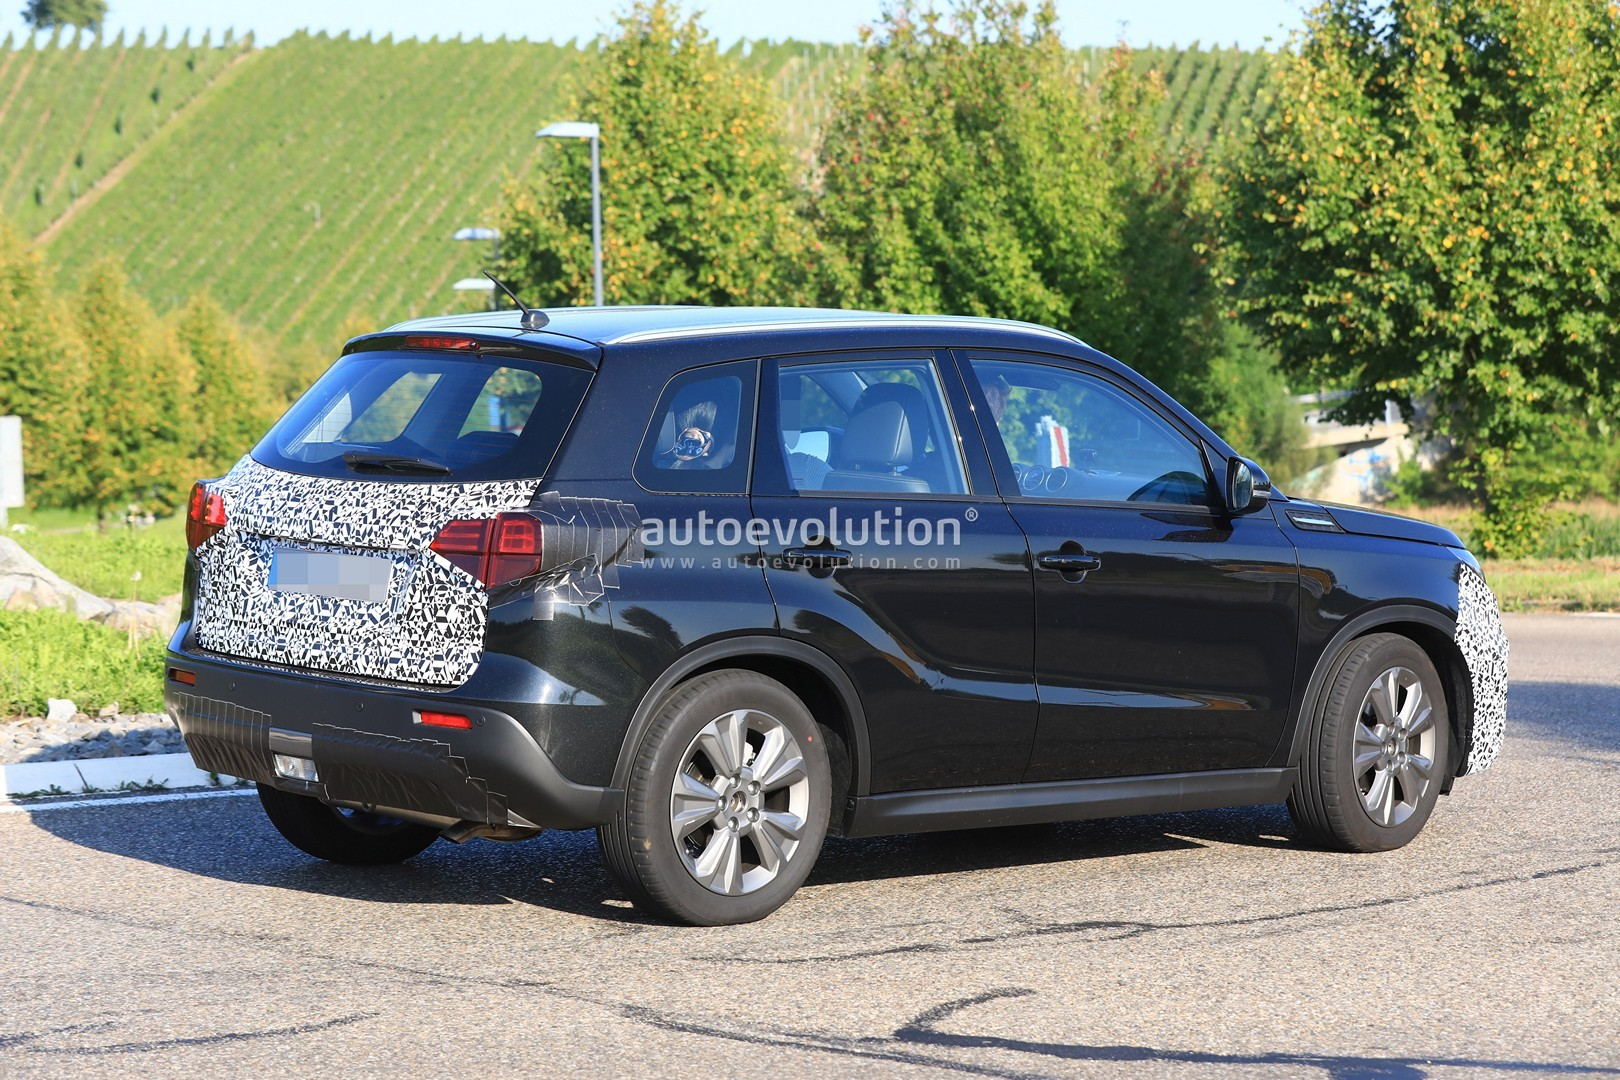 2018 suzuki vitara facelift spied has blocked off grille autoevolution. Black Bedroom Furniture Sets. Home Design Ideas